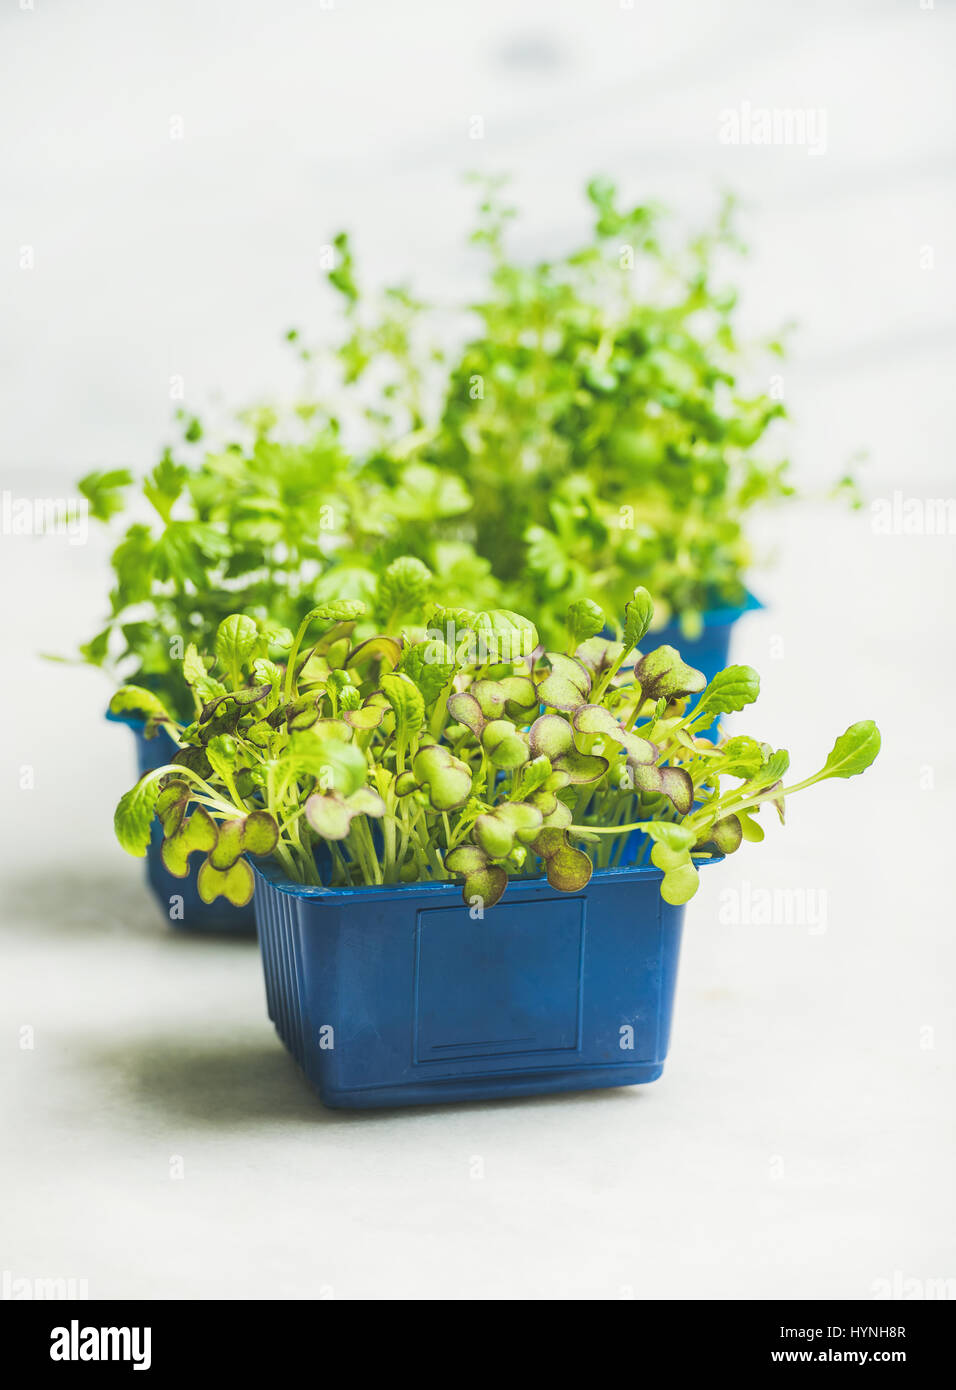 Fresh spring green live radish kress sprouts, white marble background - Stock Image